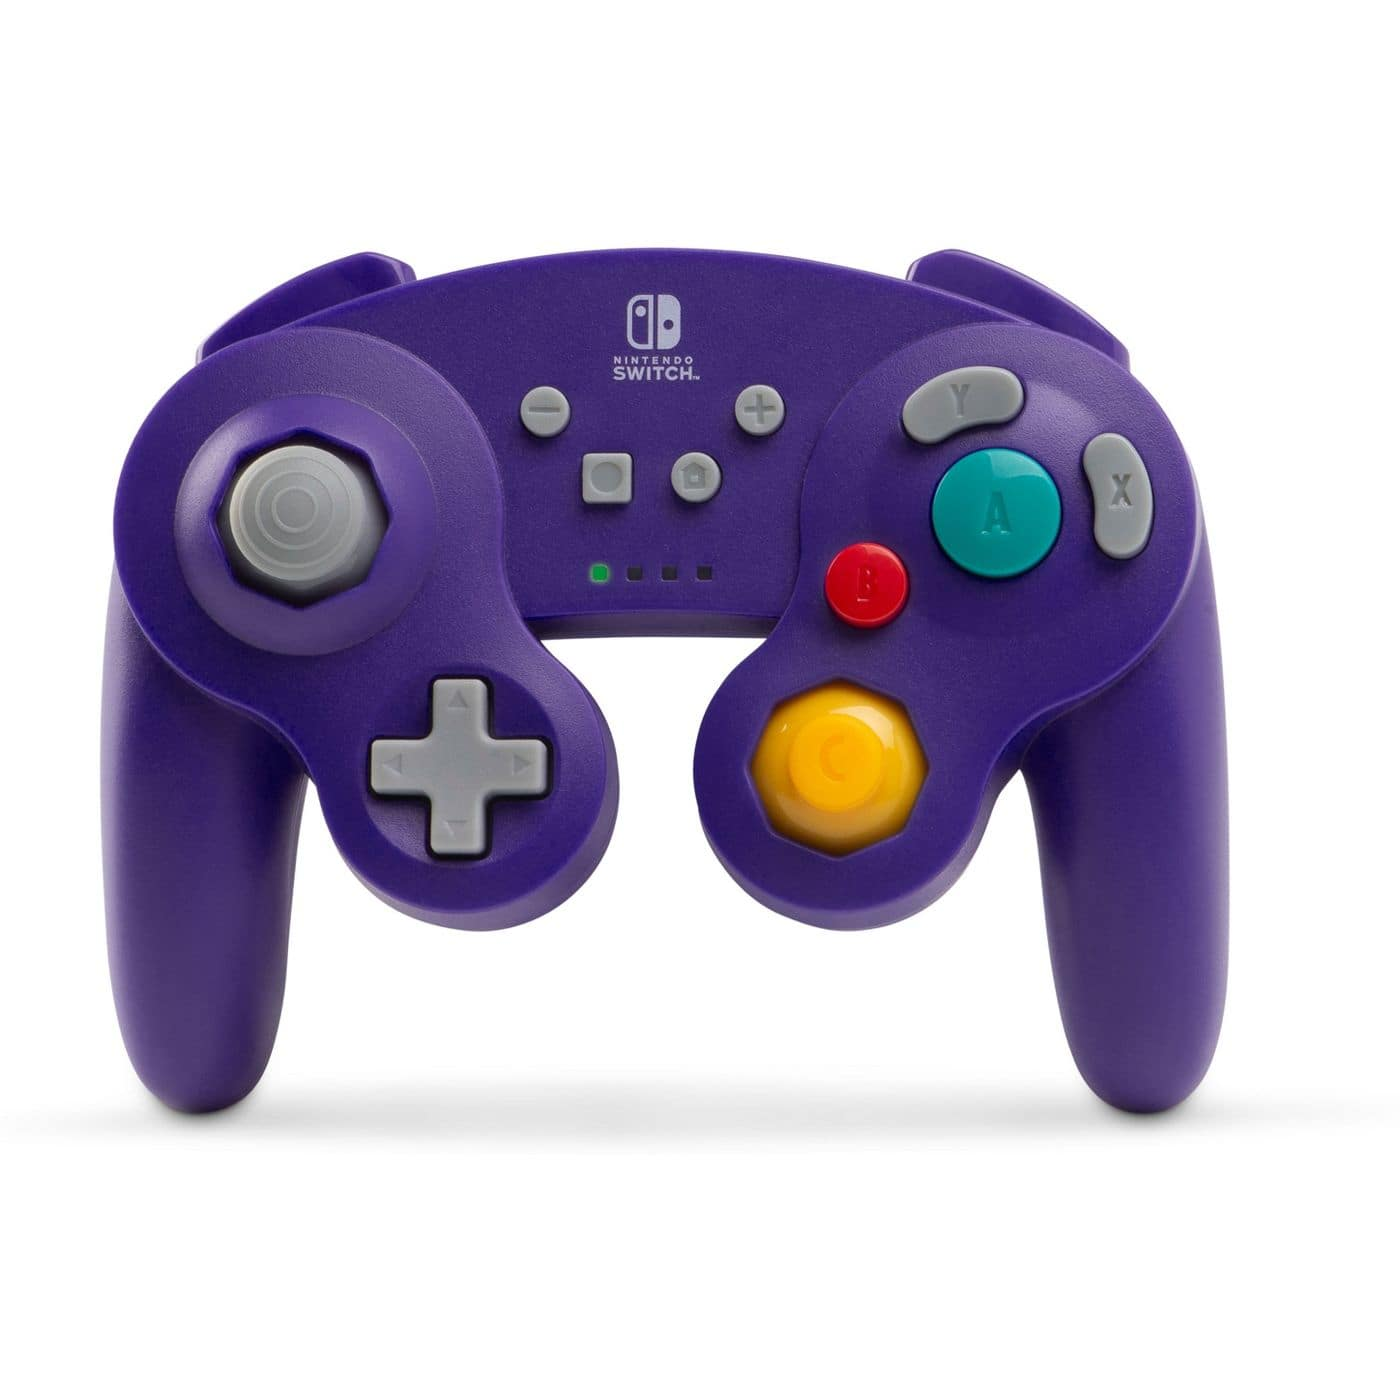 PowerA Wireless GameCube Controller for Nintendo Switch (Purple) $24.56 + Free Shipping